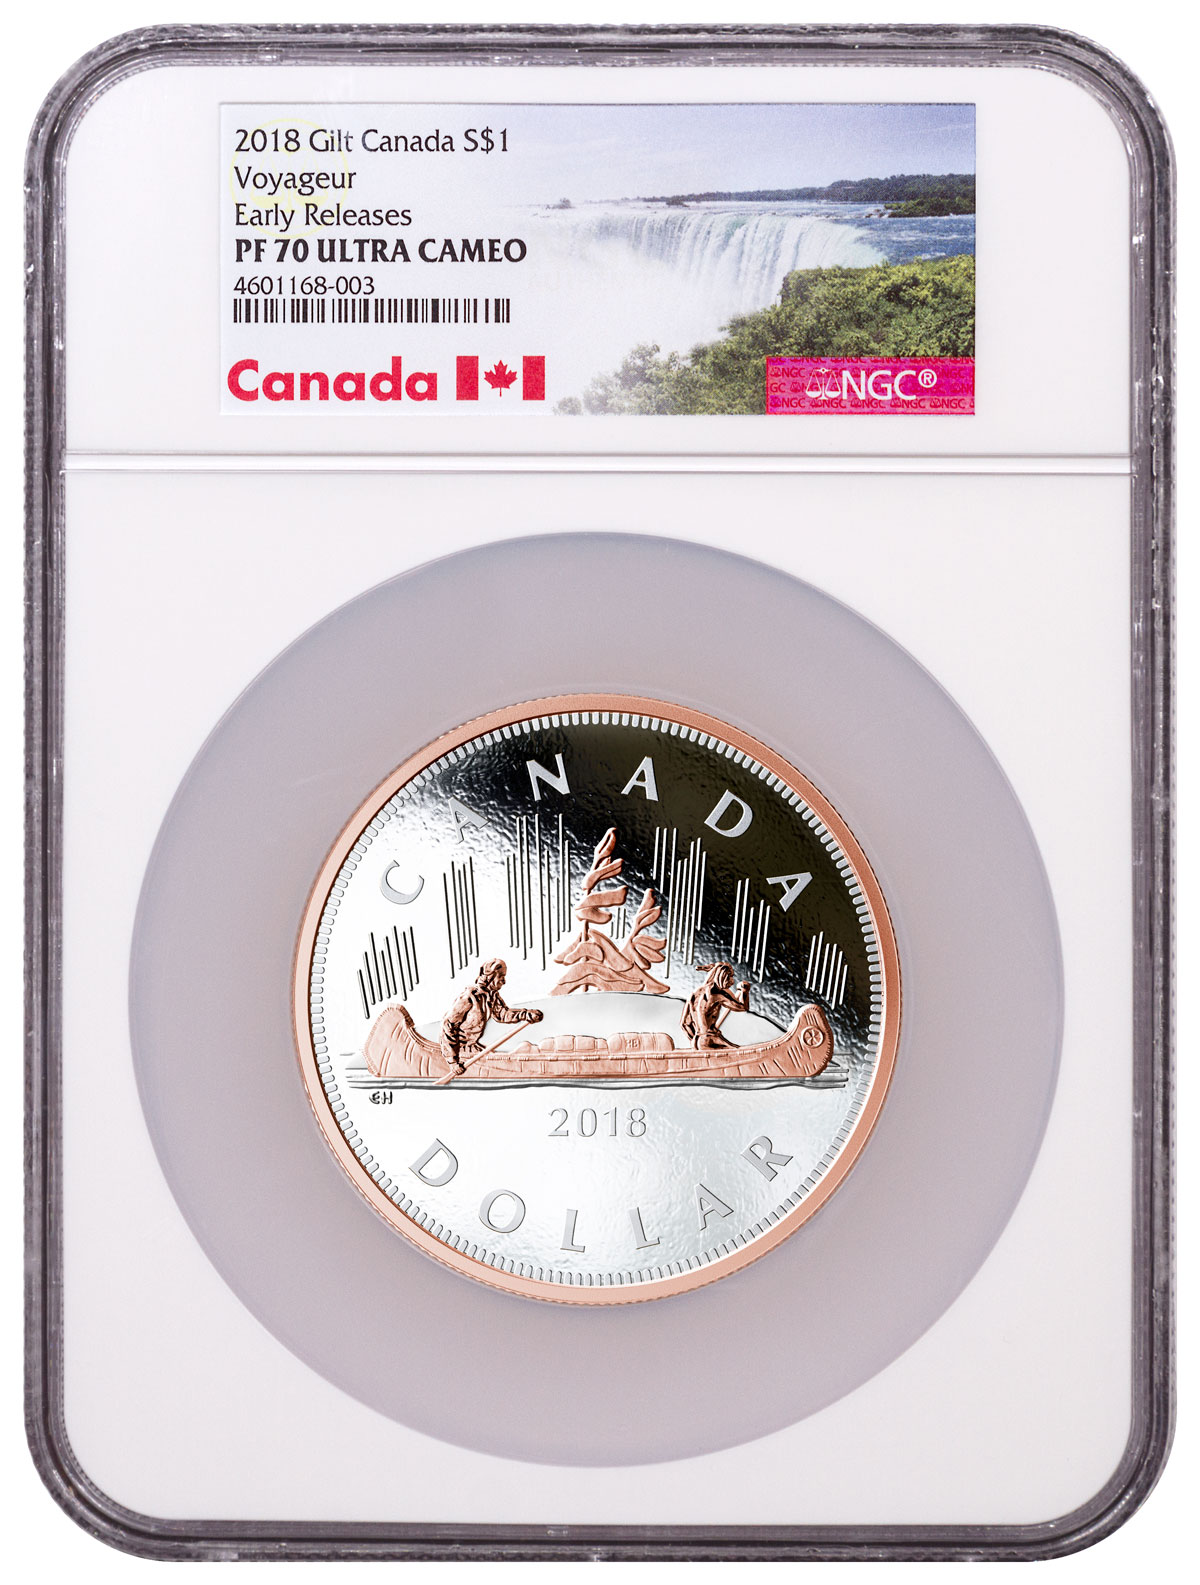 2018 Canada Big Coin Voyageur Dollar 5 Oz Silver Gilt 1